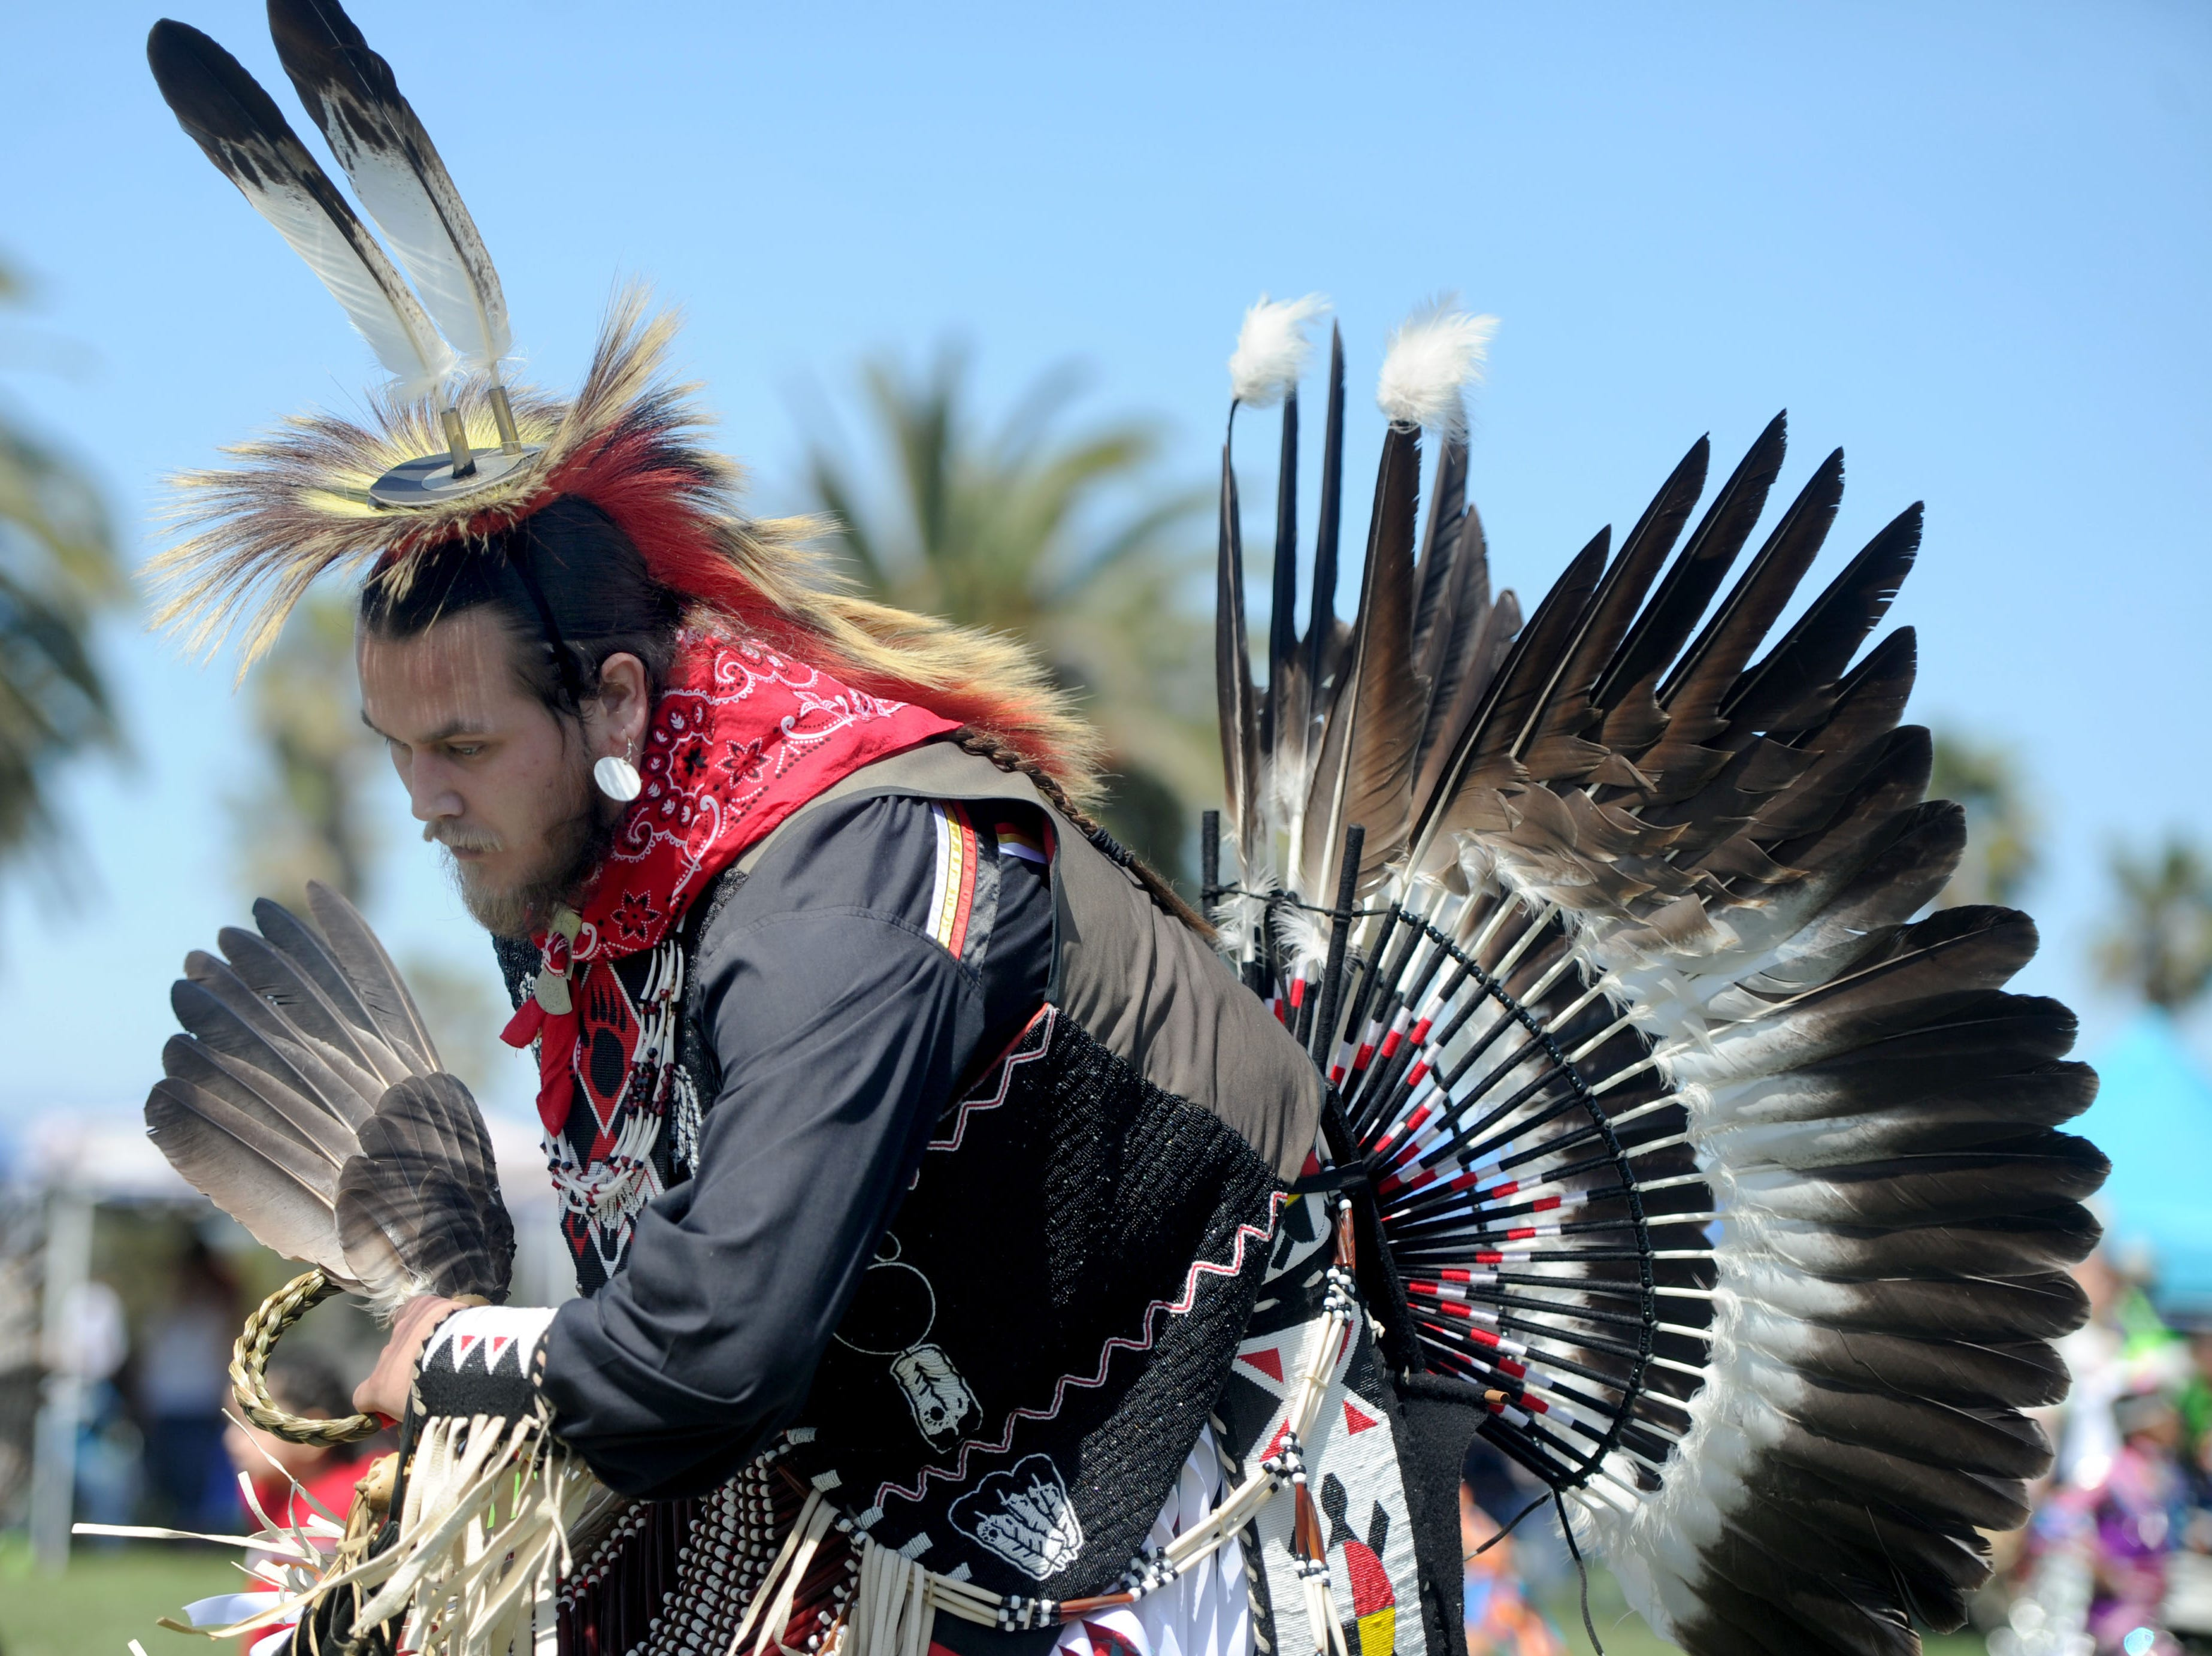 """Kale Flores, of Temecula, dances Saturday during the intertribal powwow at Oxnard Beach Park. The theme was """"Honoring Our Elders and Veterans."""""""